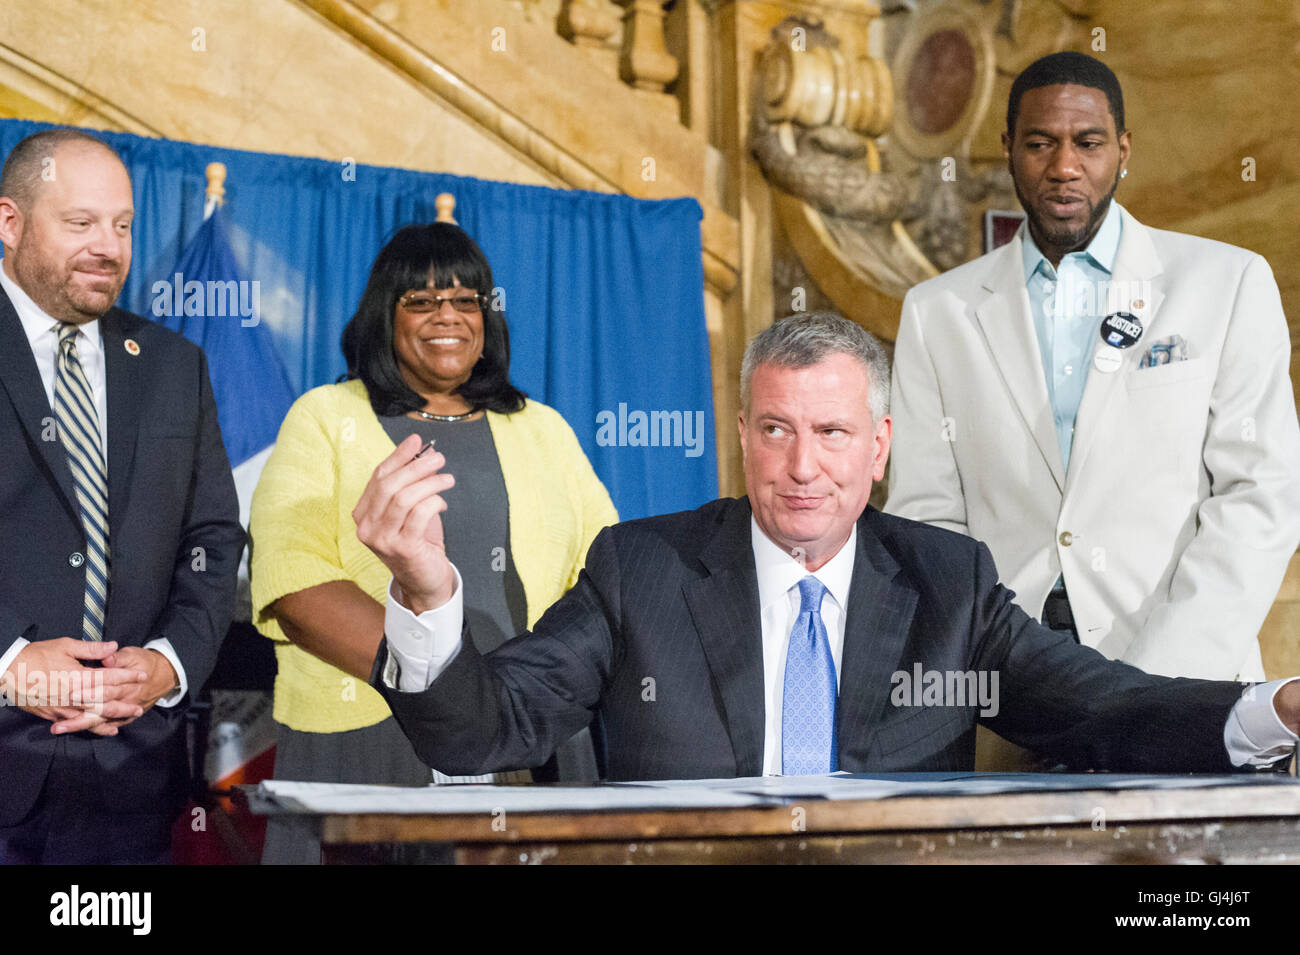 New York Mayor Bill de Blasio, at a bill signing related to NYPD reporting procedures on Wednesday, August 3, 2016 - Stock Image